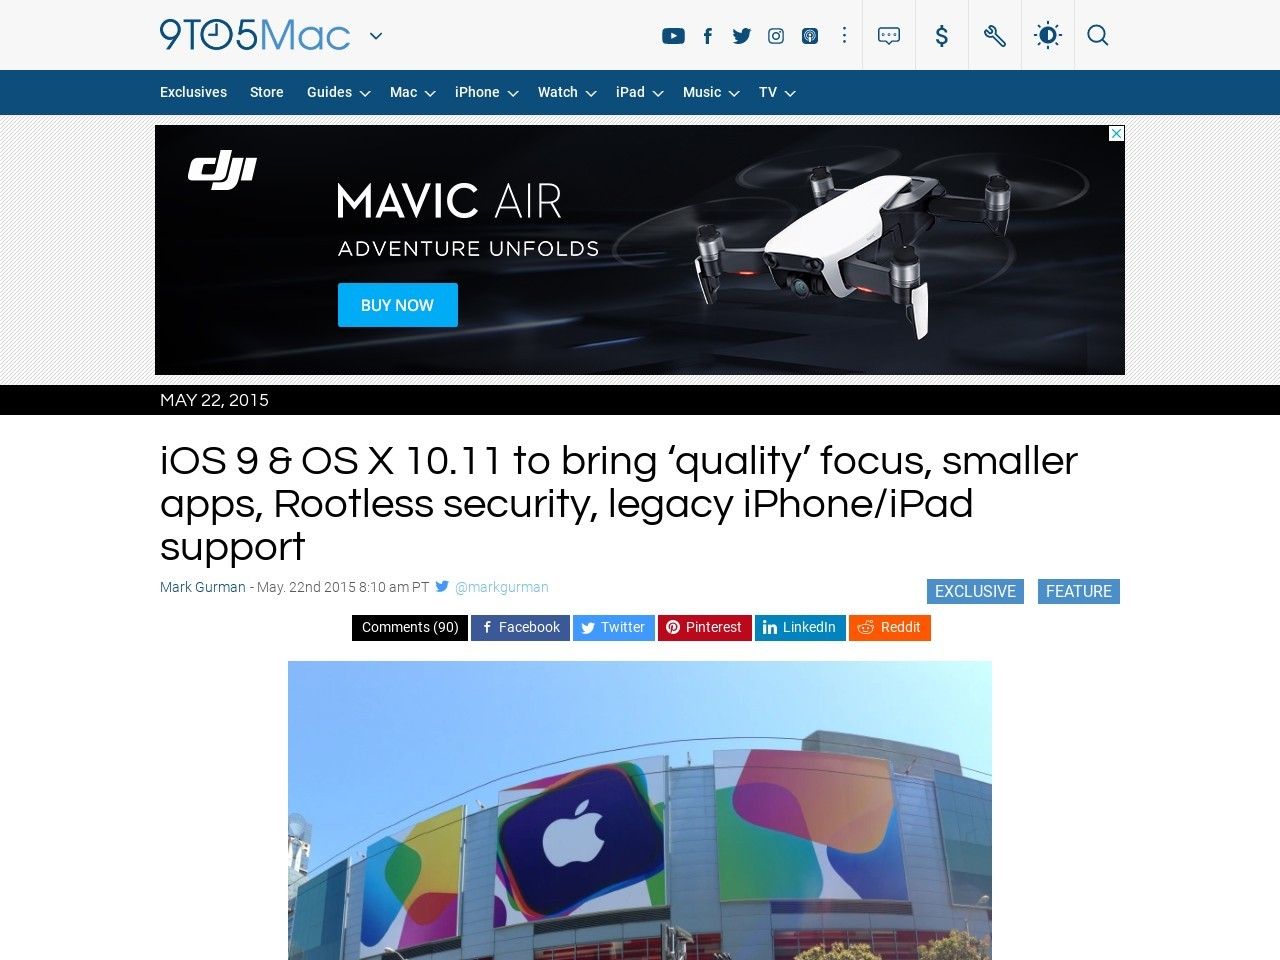 iOS 9 & OS X 10.11 to bring 'quality' focus, smaller apps …